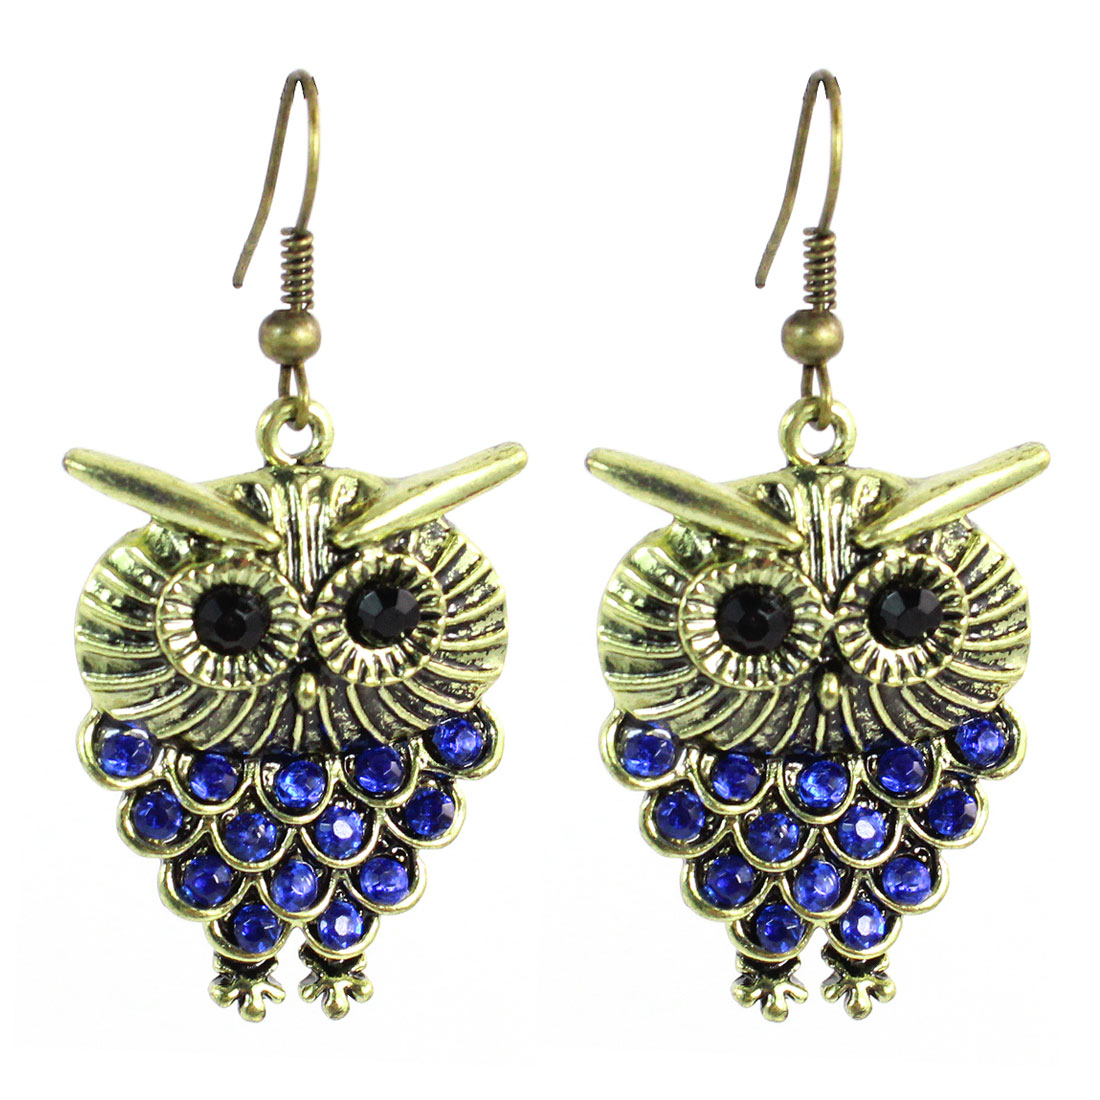 Woman Royal Blue Rhinestones Inlaid Bronze Tone Owl Dangling Hook Earrings Pair